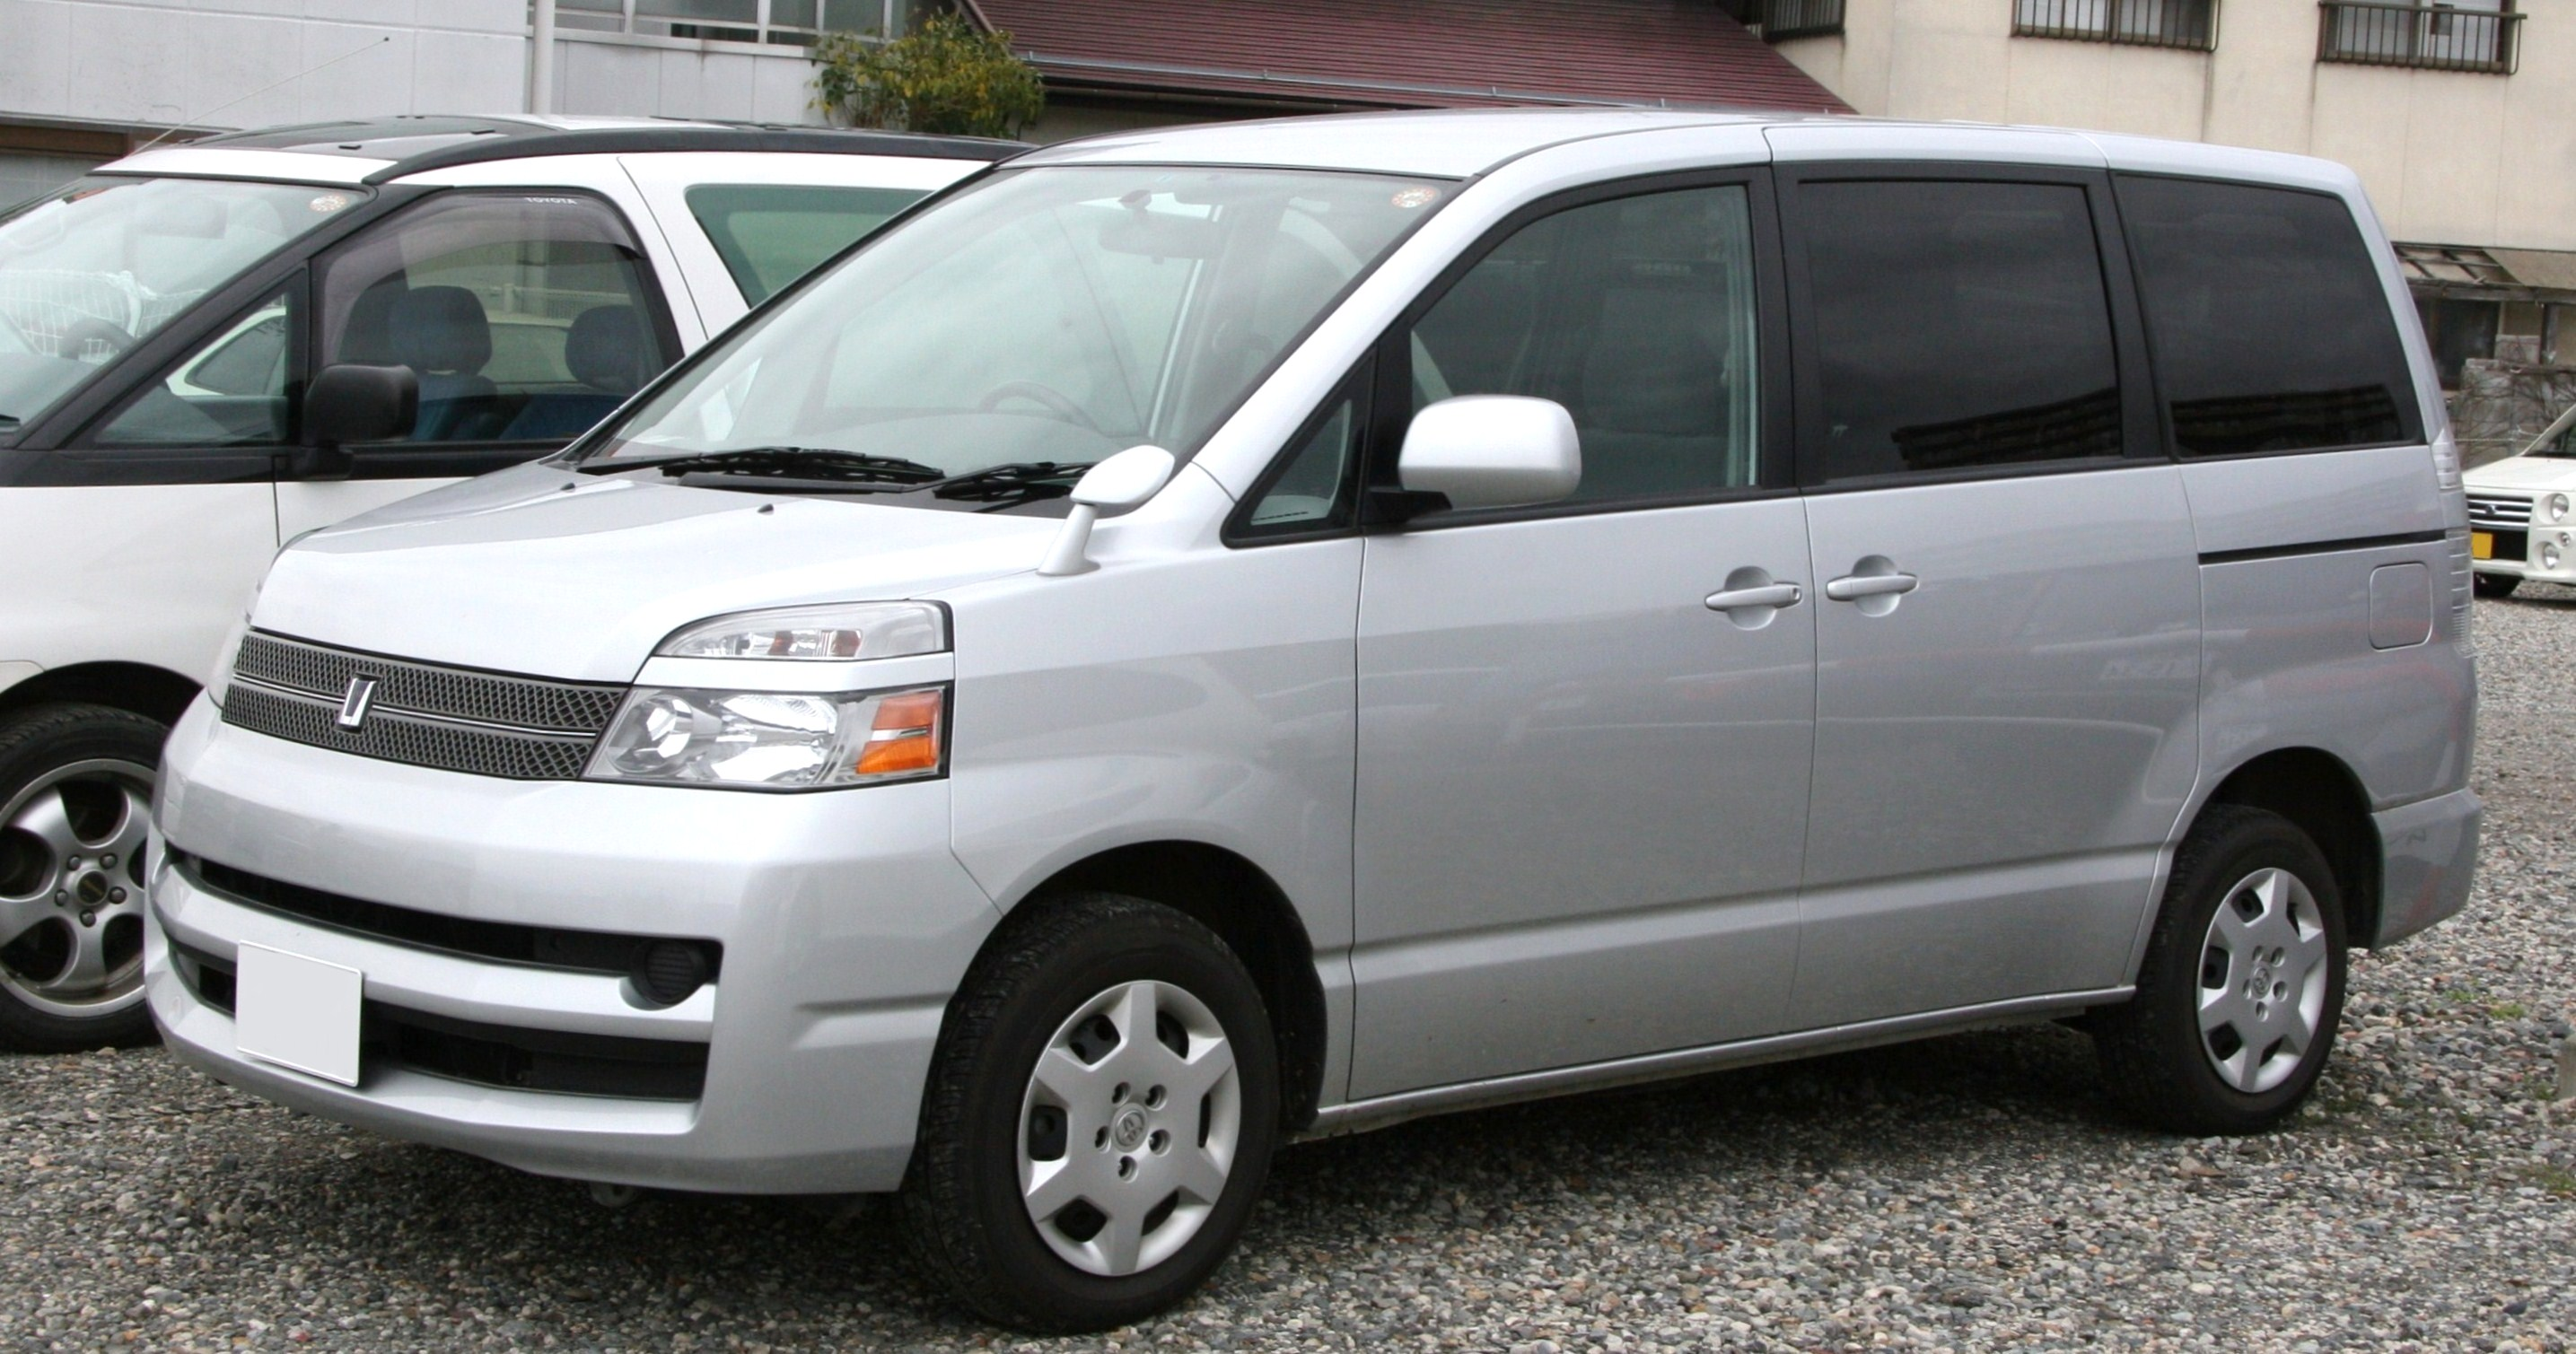 Toyota Voxy 2007 photo - 1